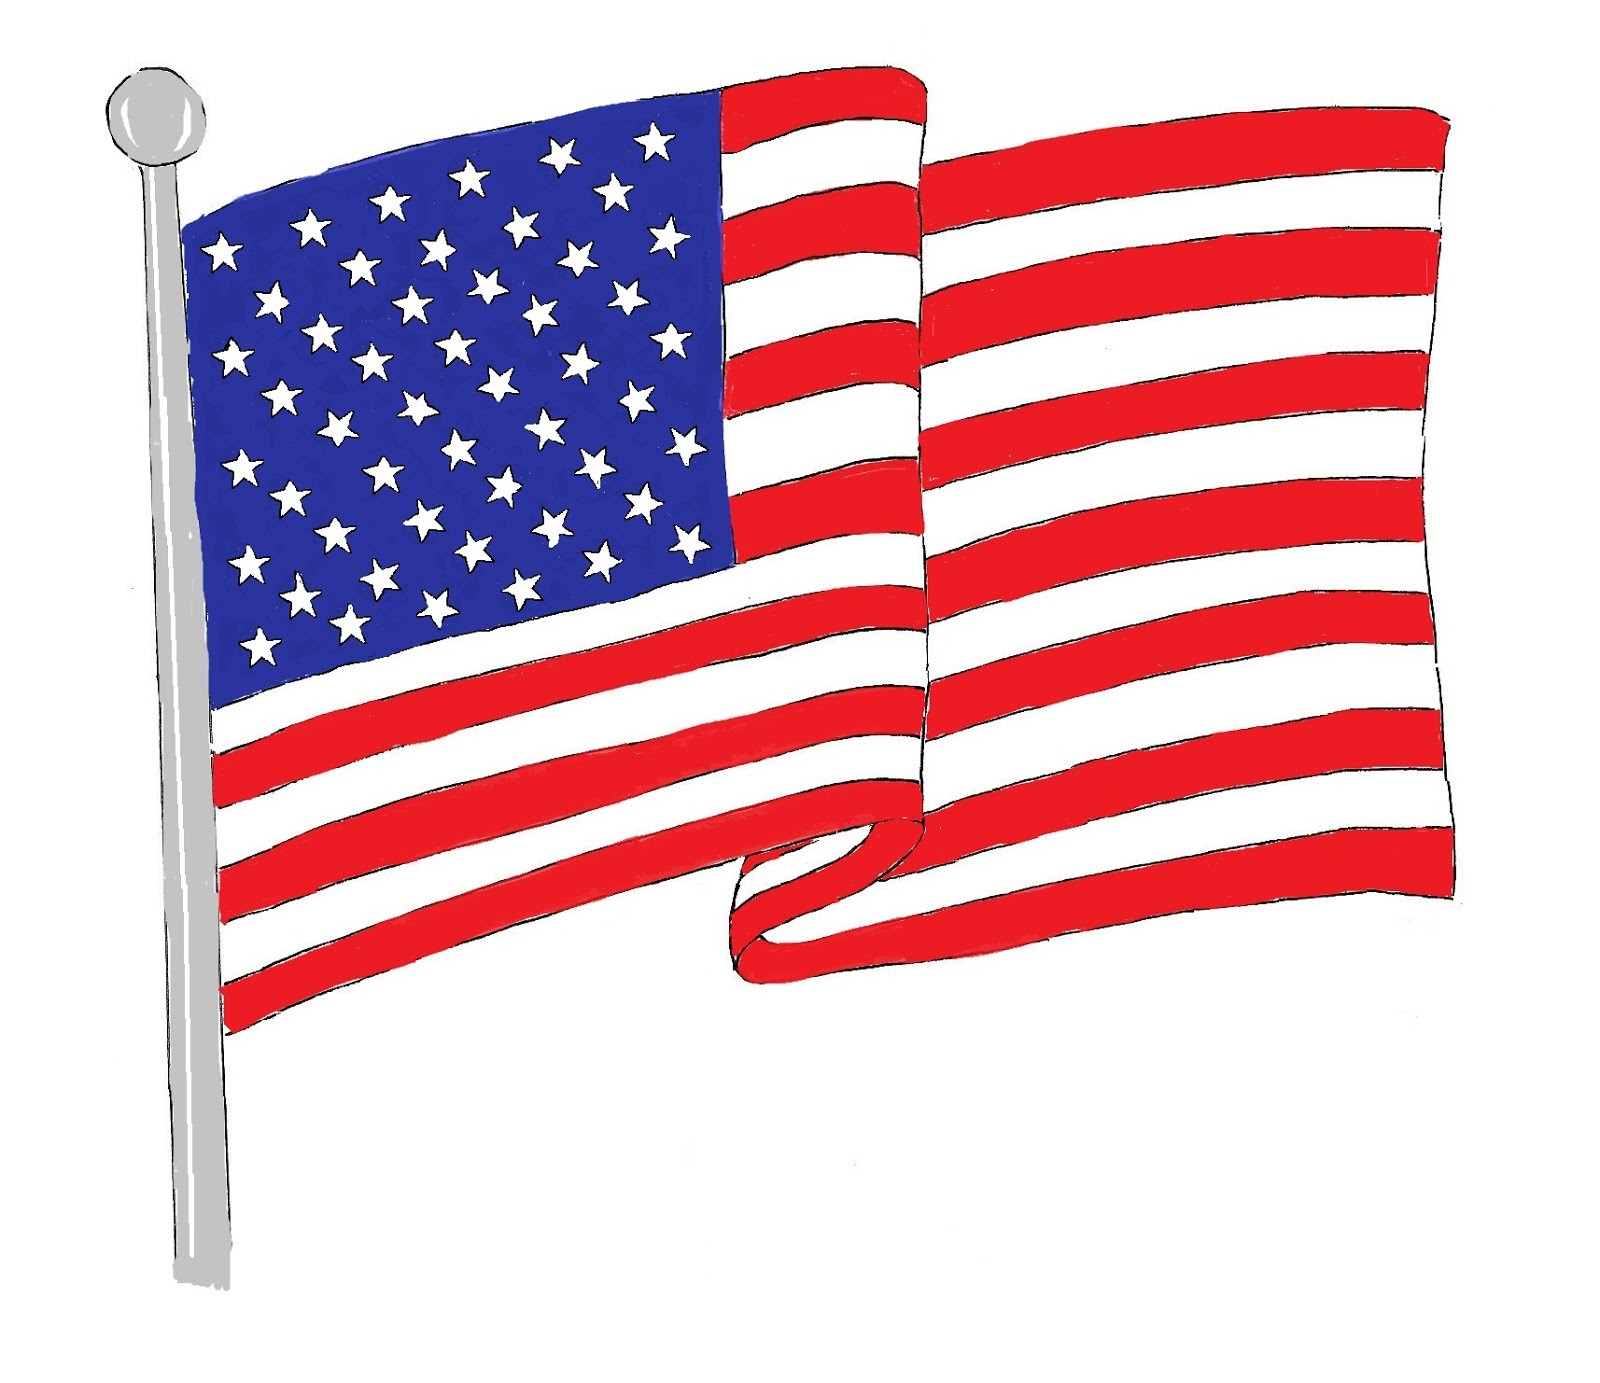 american flag clipart free at getdrawings com free for personal rh getdrawings com us flag clip art free vector usa flag clip art free